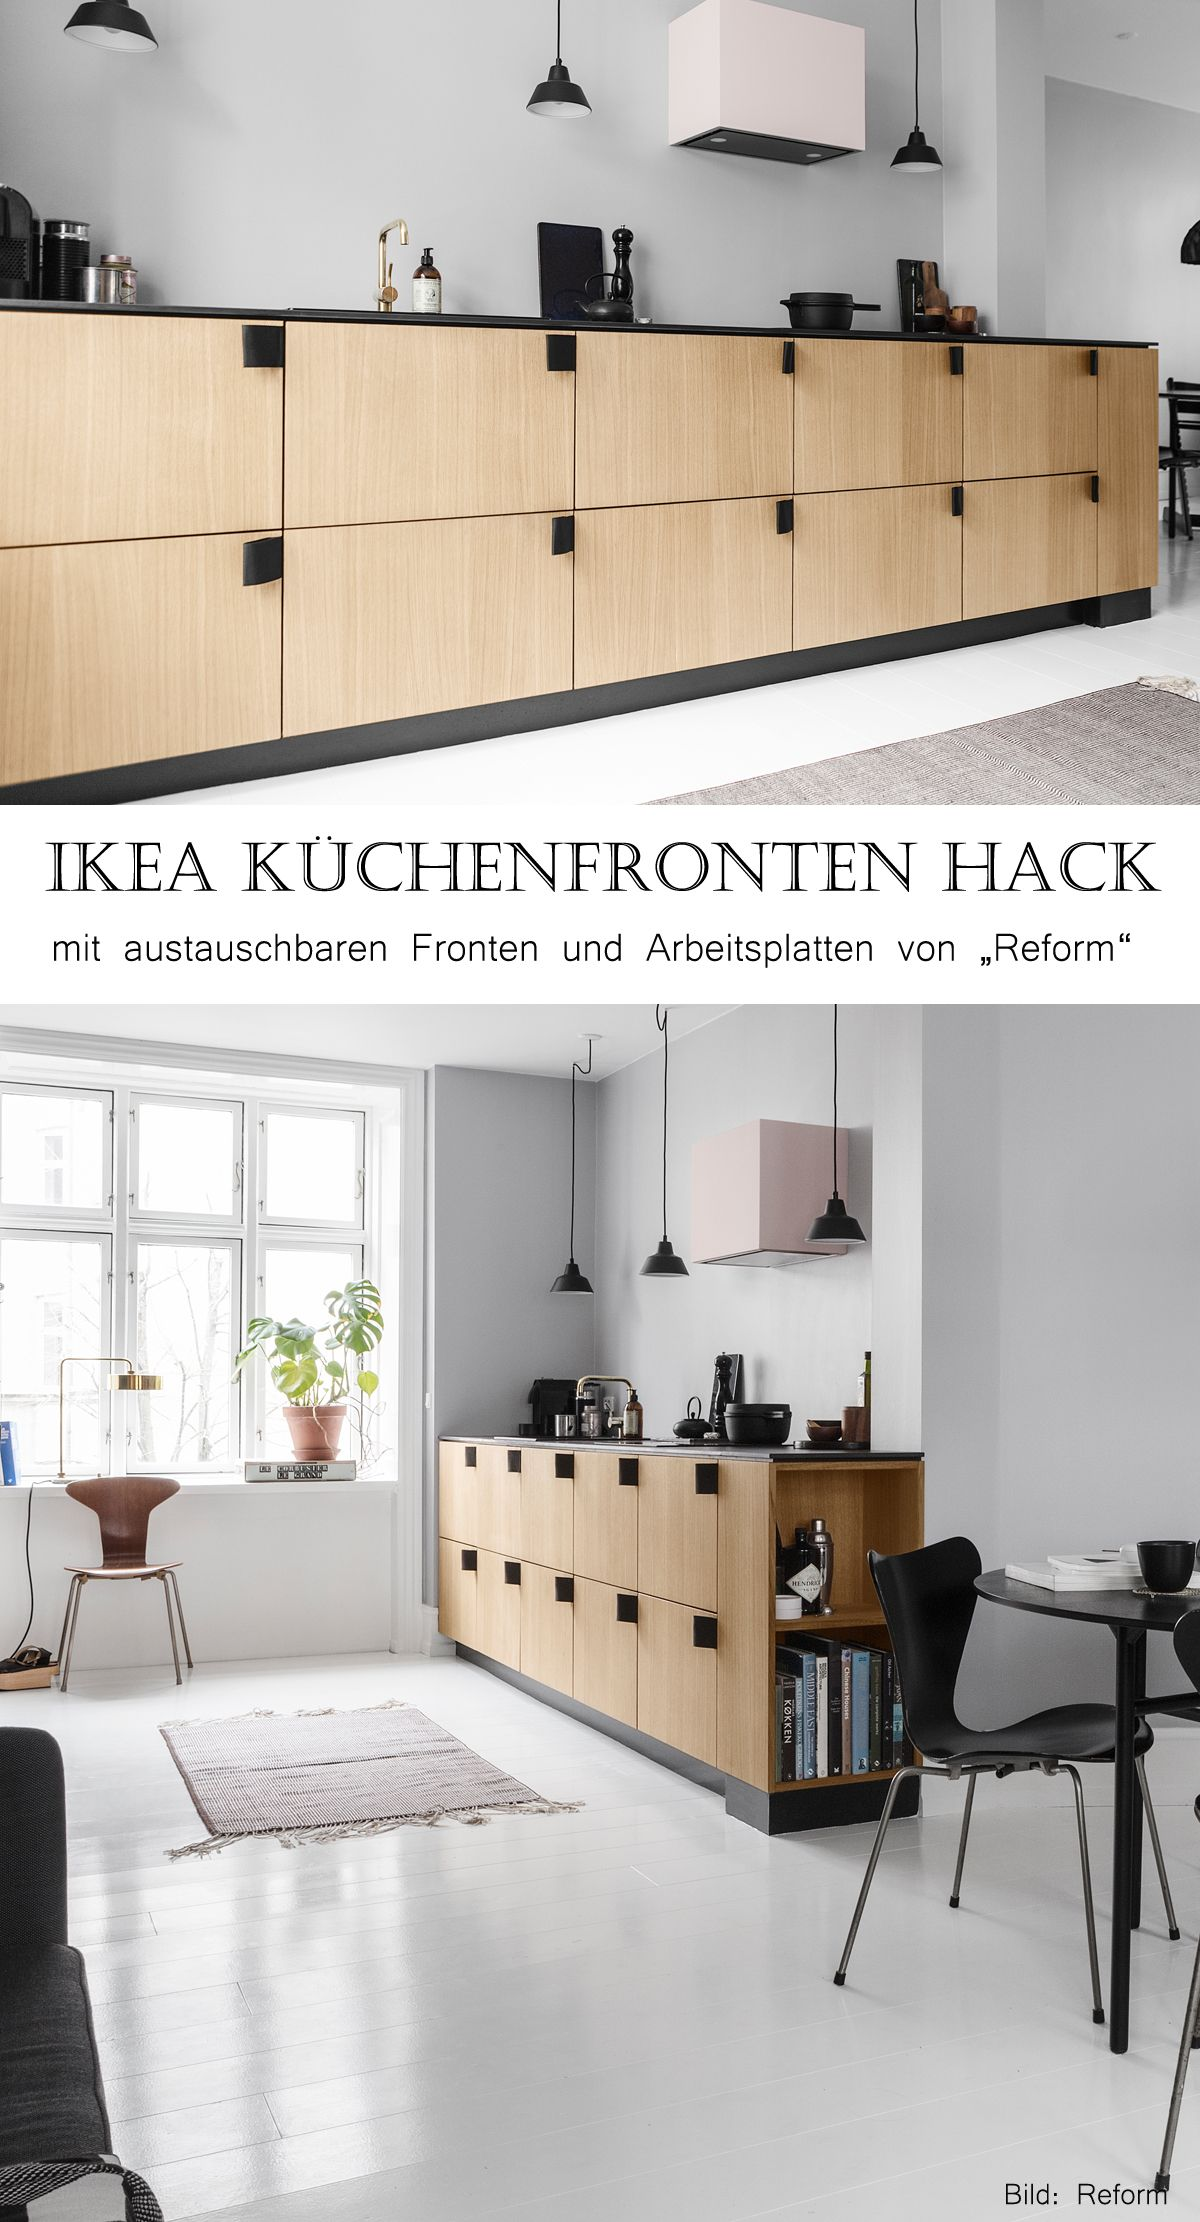 Wohndesign in der küche ikea küchenfronten pimpen  lp and kitchens